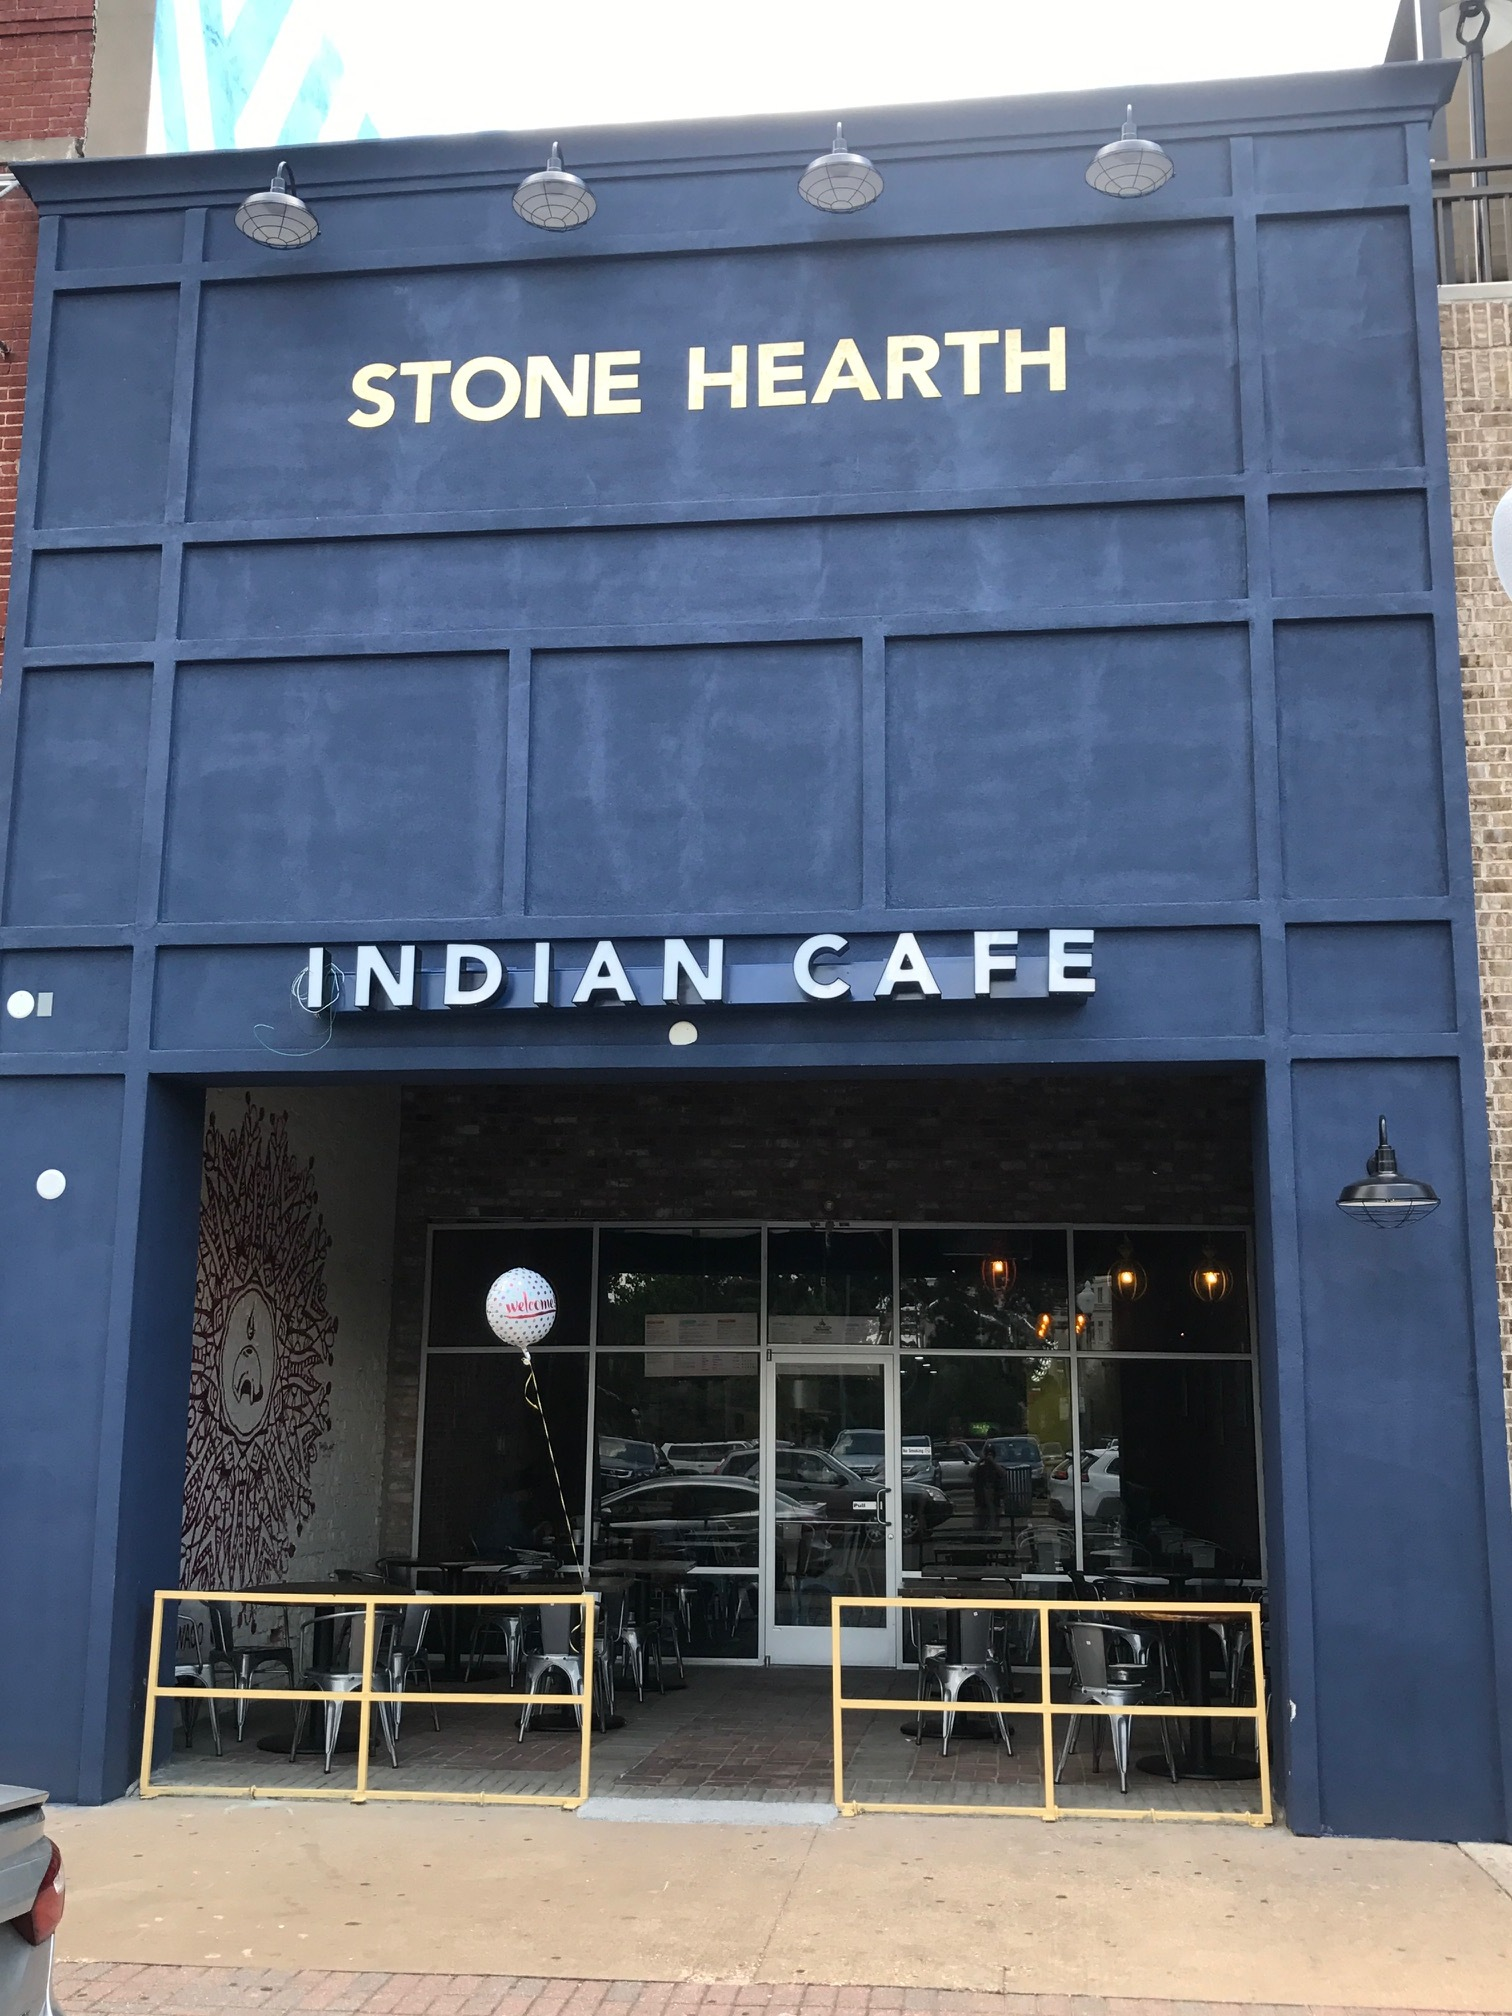 As Waco's only Indian Restaurant, Stone Hearth serves a bourgening population of diners searching for authentic ethnic cuisine.